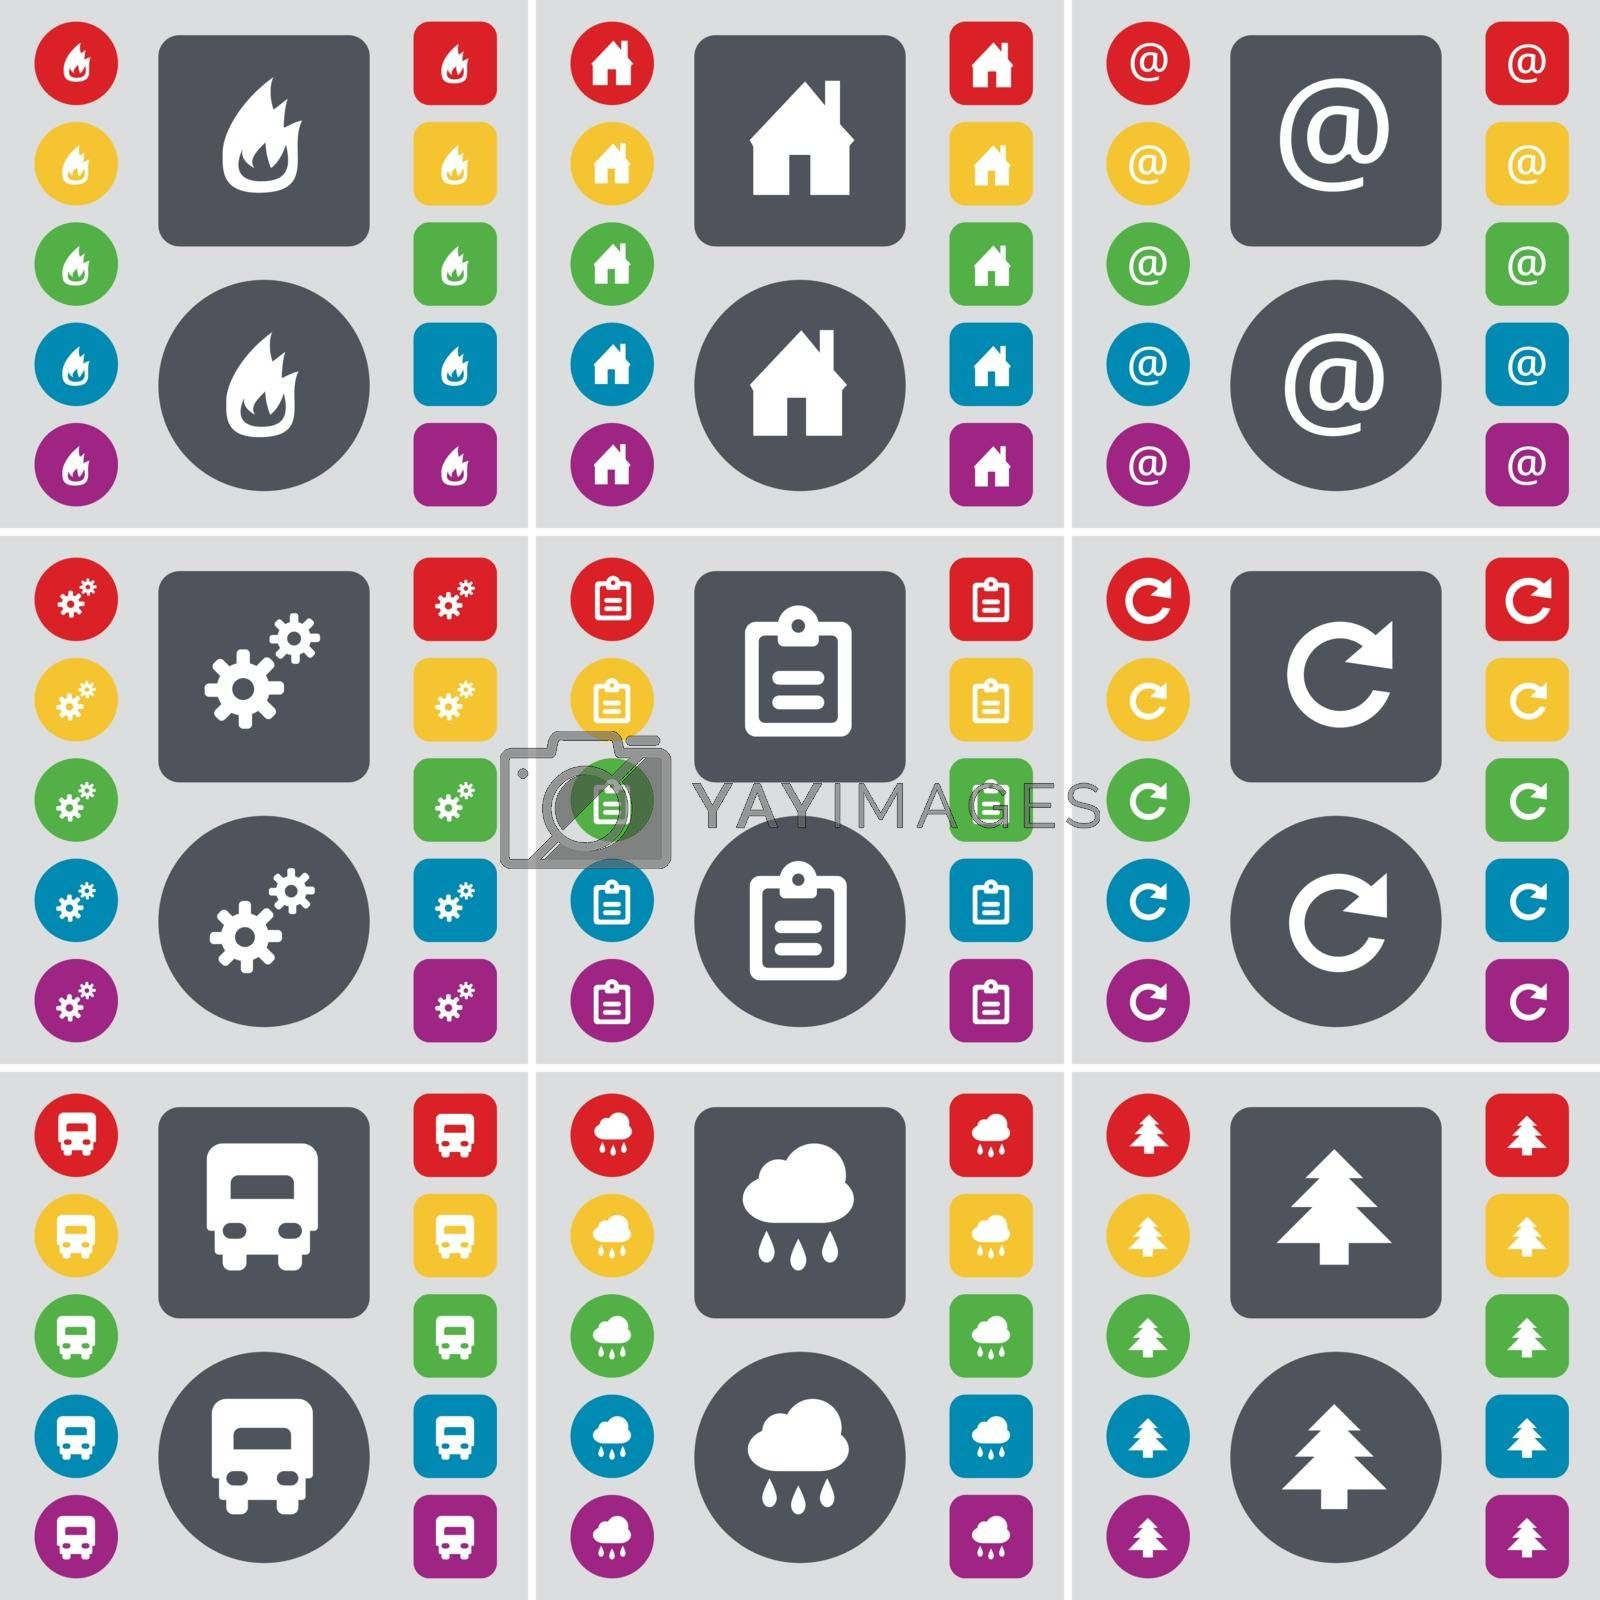 Royalty free image of Fire, House, Mail, Gear, Survey, Reload, Truck, Cloud, Firtree icon symbol. A large set of flat, colored buttons for your design. Vector by serhii_lohvyniuk